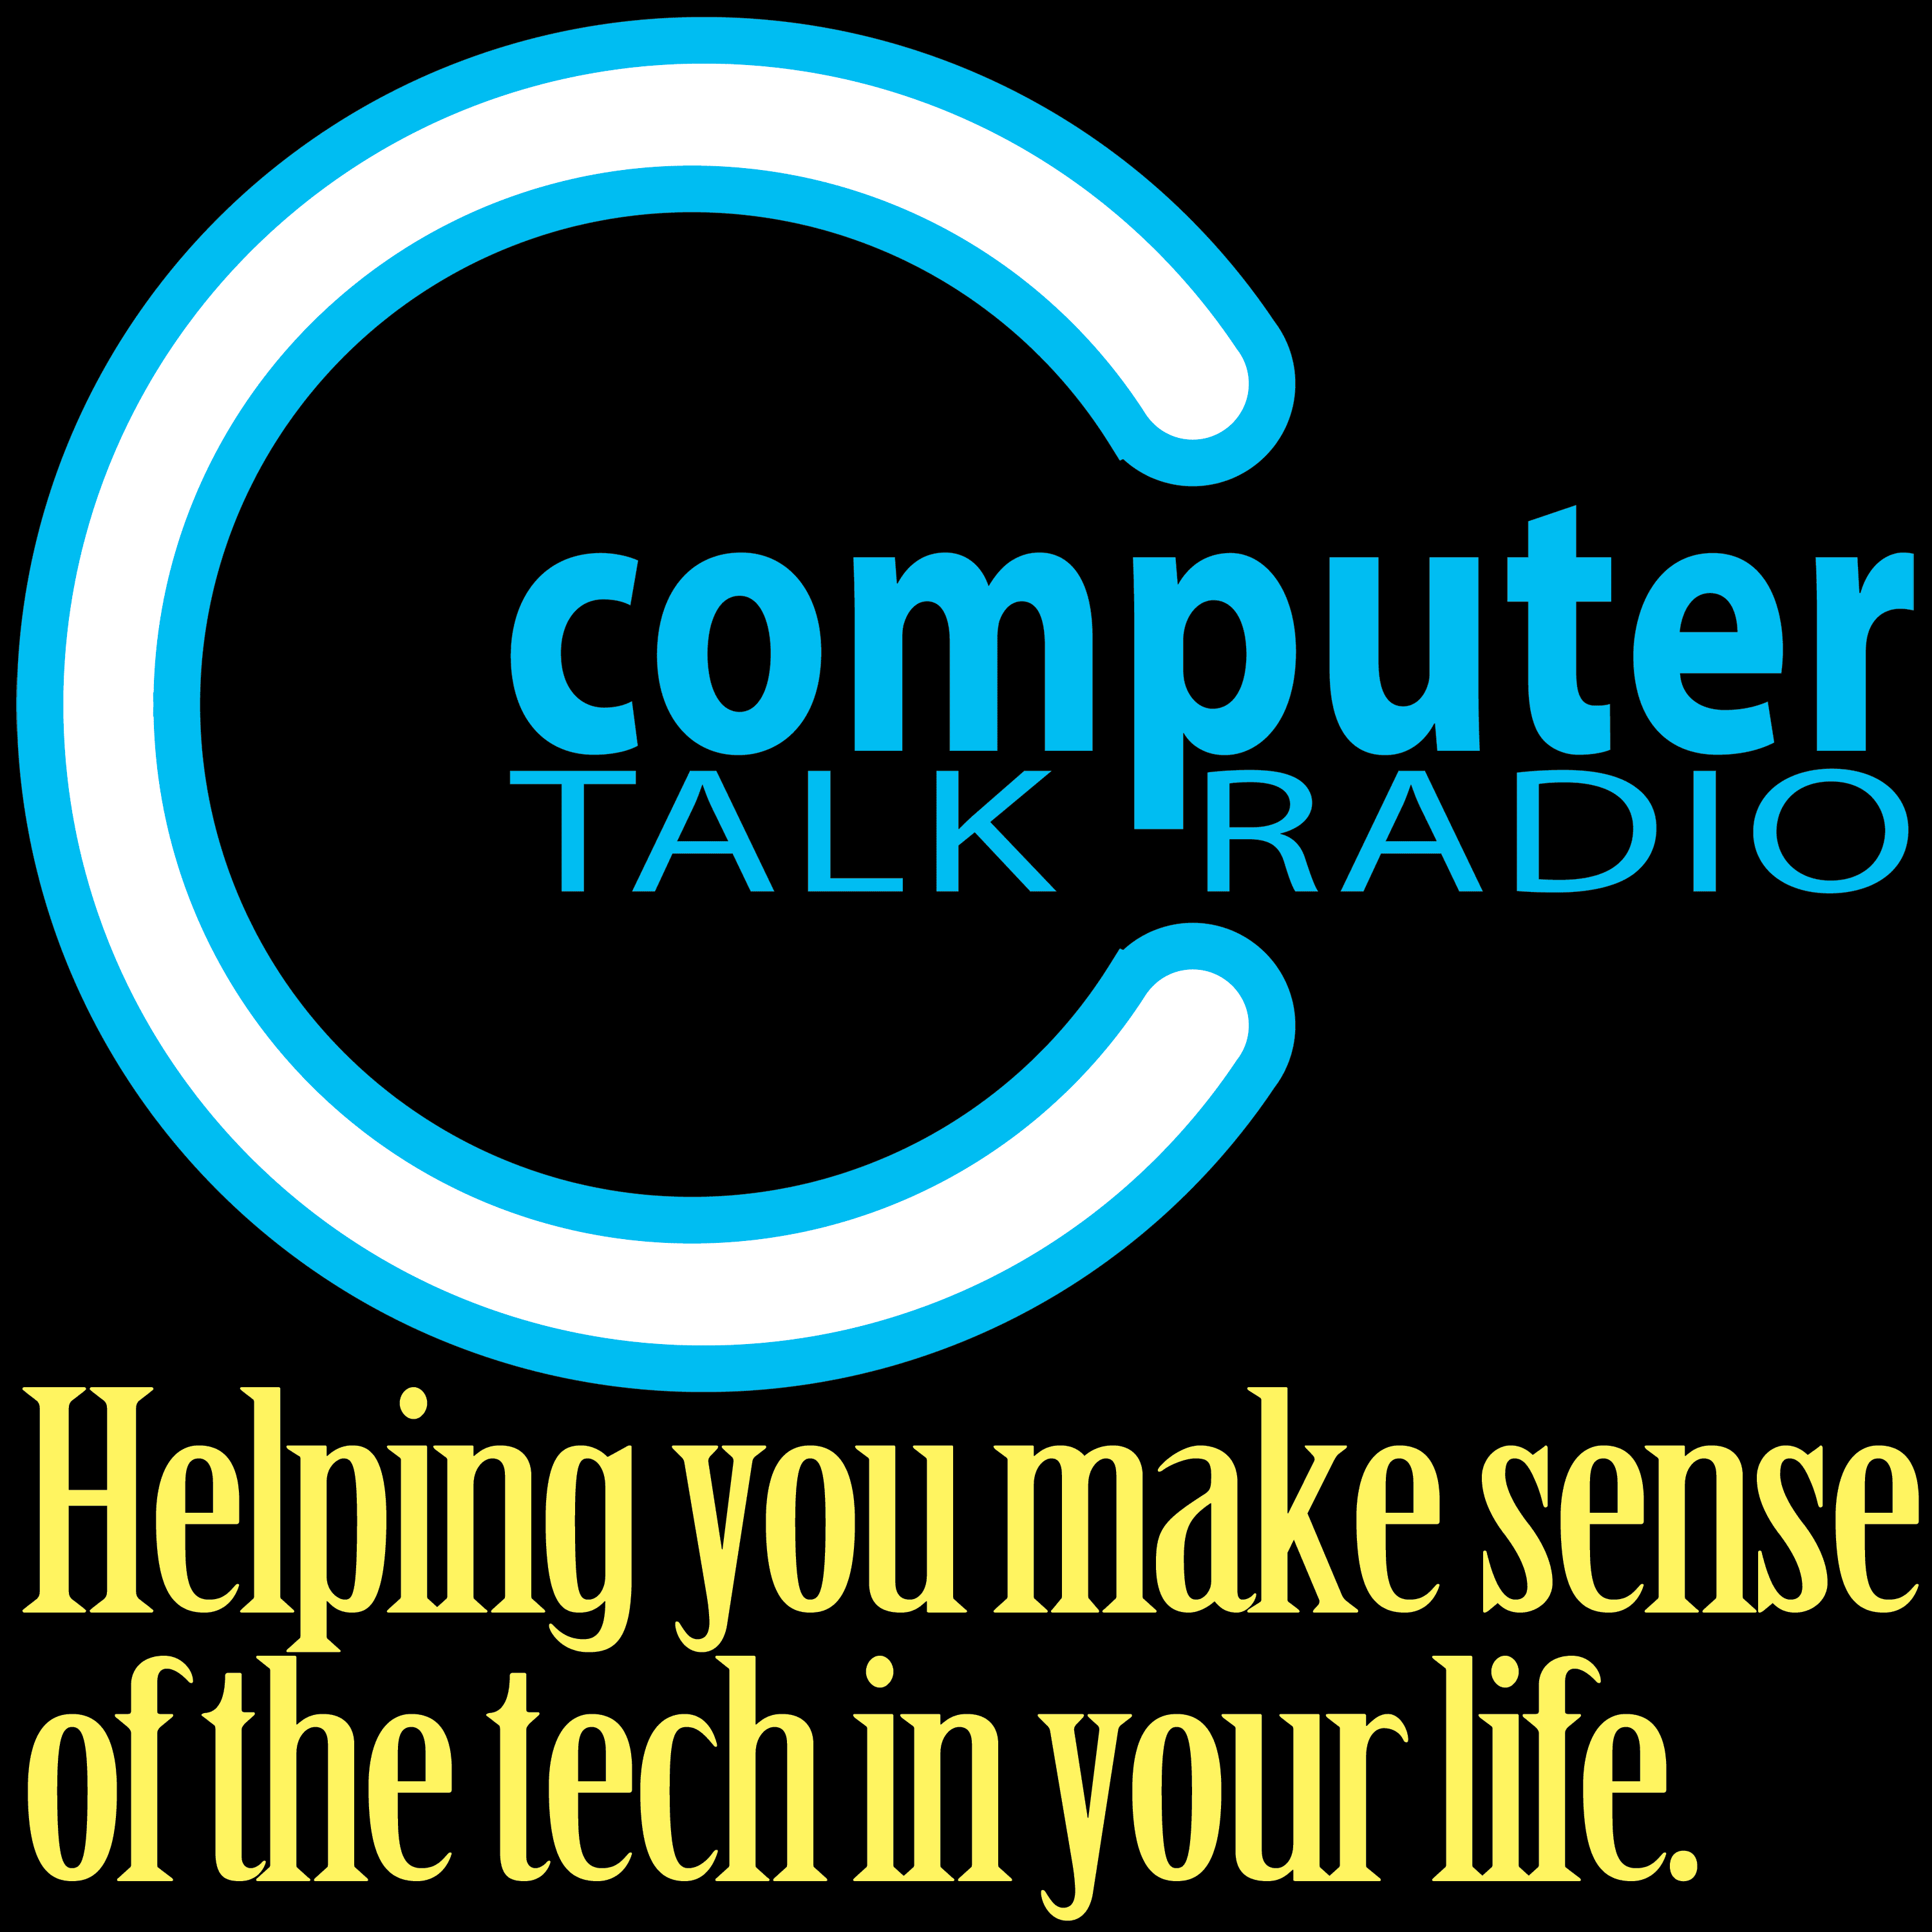 A highlight from Computer Talk Radio Broadcast 10-02-2021